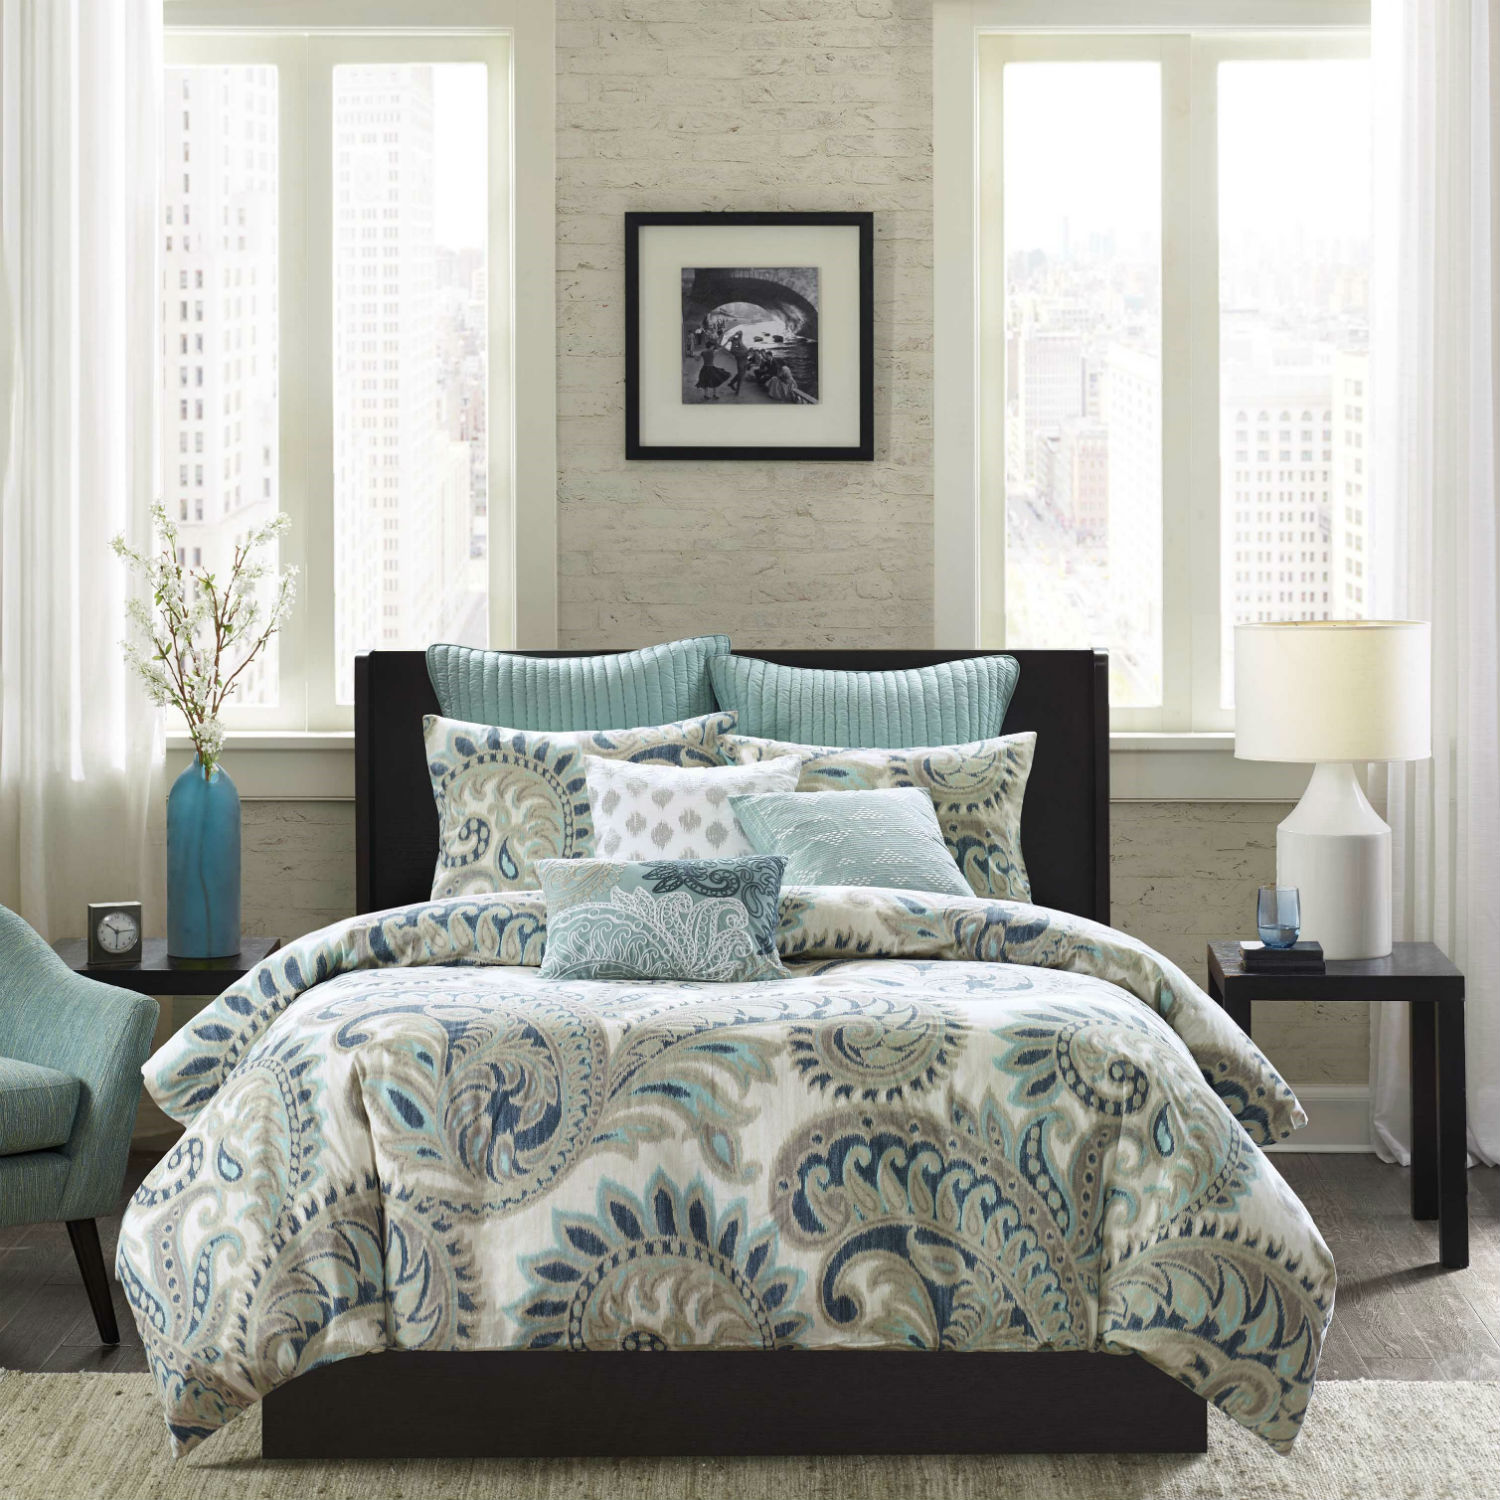 Mira By Ink amp Ivy Bedding BeddingSuperStorecom